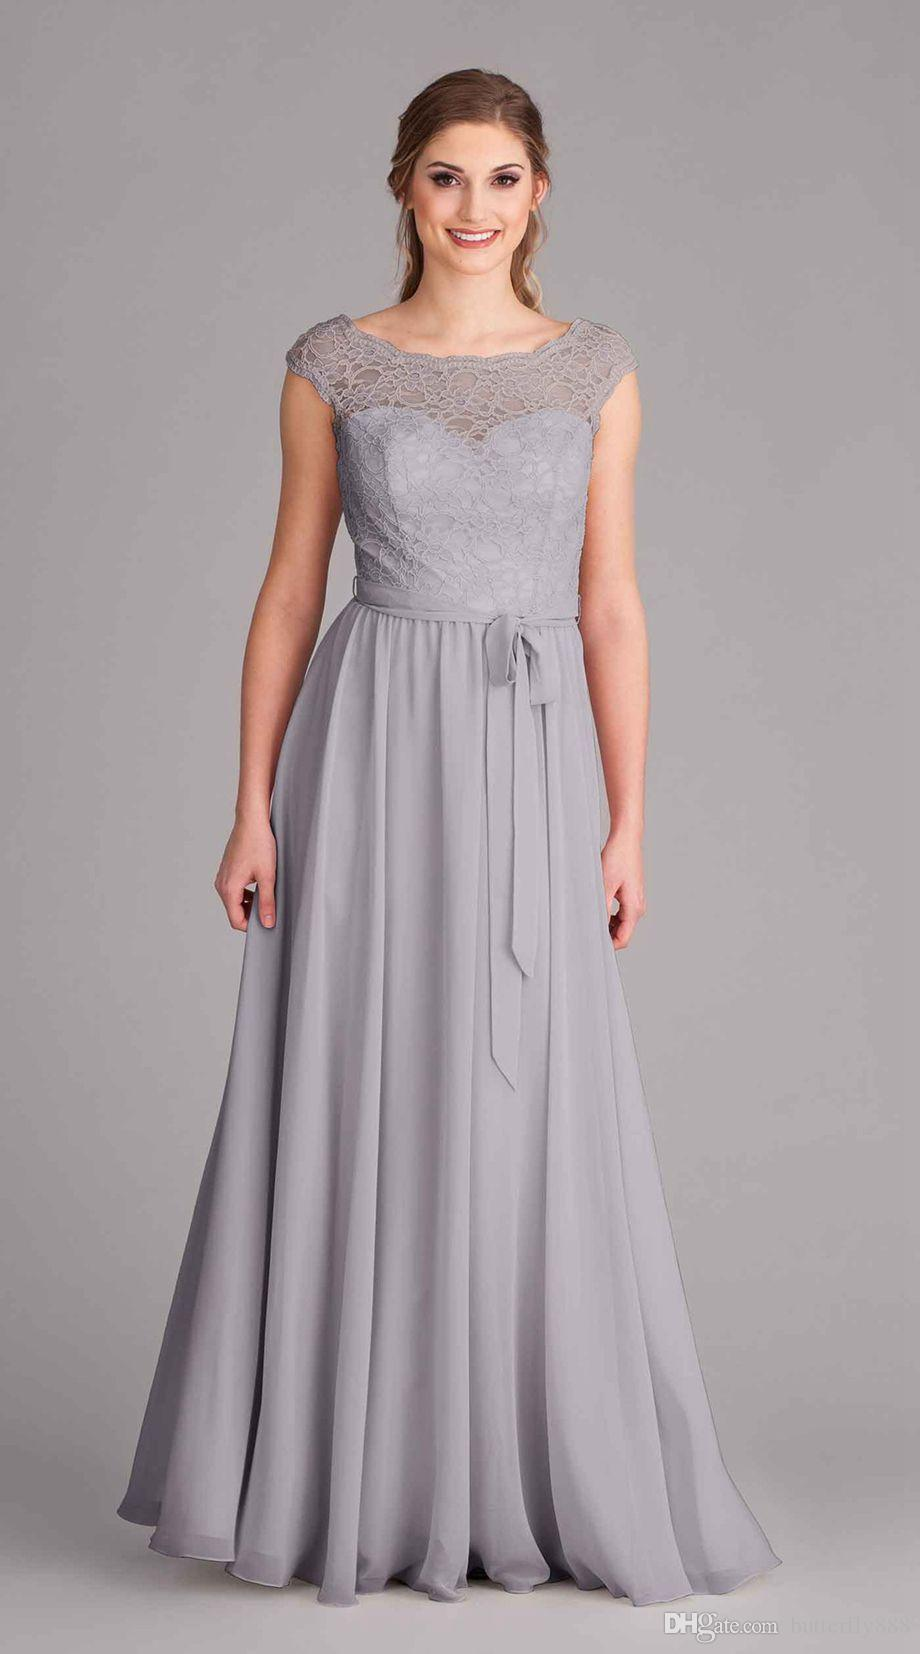 Sexy silver grey long bridesmaid dresses 2017 scoop neck cap sexy silver grey long bridesmaid dresses 2017 scoop neck cap sleeve chiffon lace wedding party dress ombrellifo Image collections